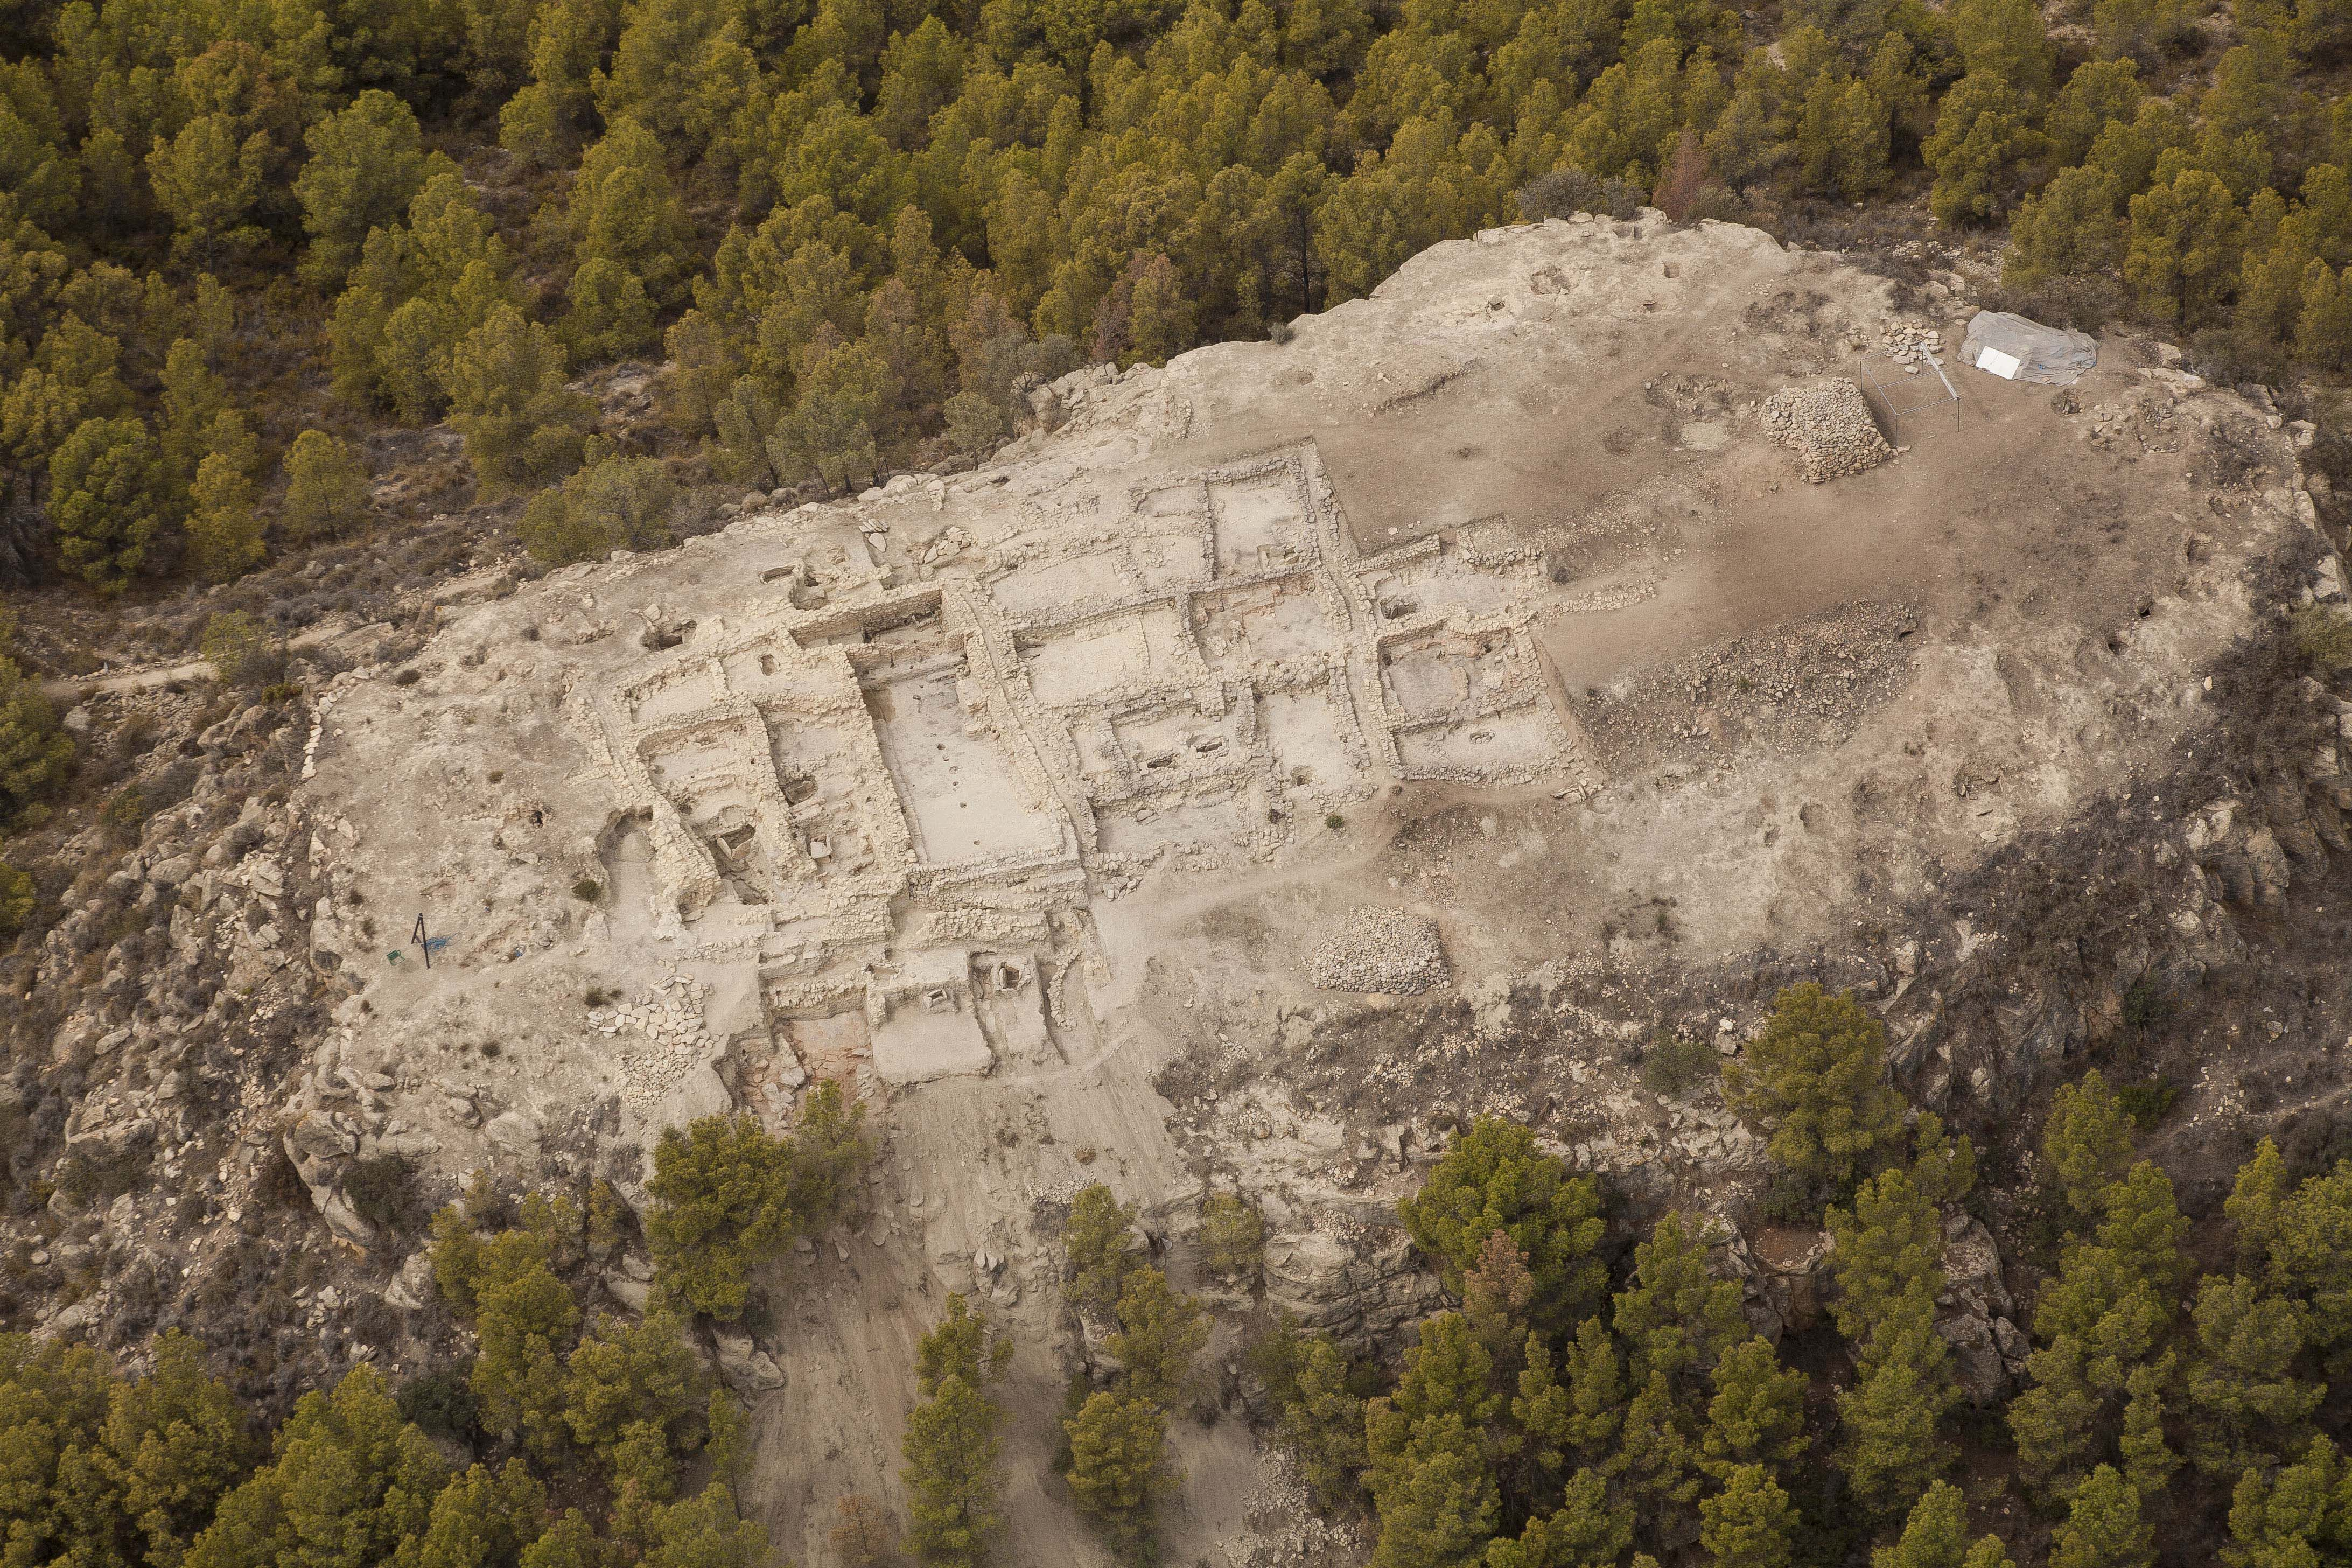 """An excavation conducted in August by the researchers of the UAB's Department of Prehistory has made evident the unique archaeological wealth of La Almoloya site, located in Pliego, Murcia. The site was the cradle of the """"El Argar"""" civilisation which lived in the south-eastern part of the Iberian Peninsula during the Bronze Age."""